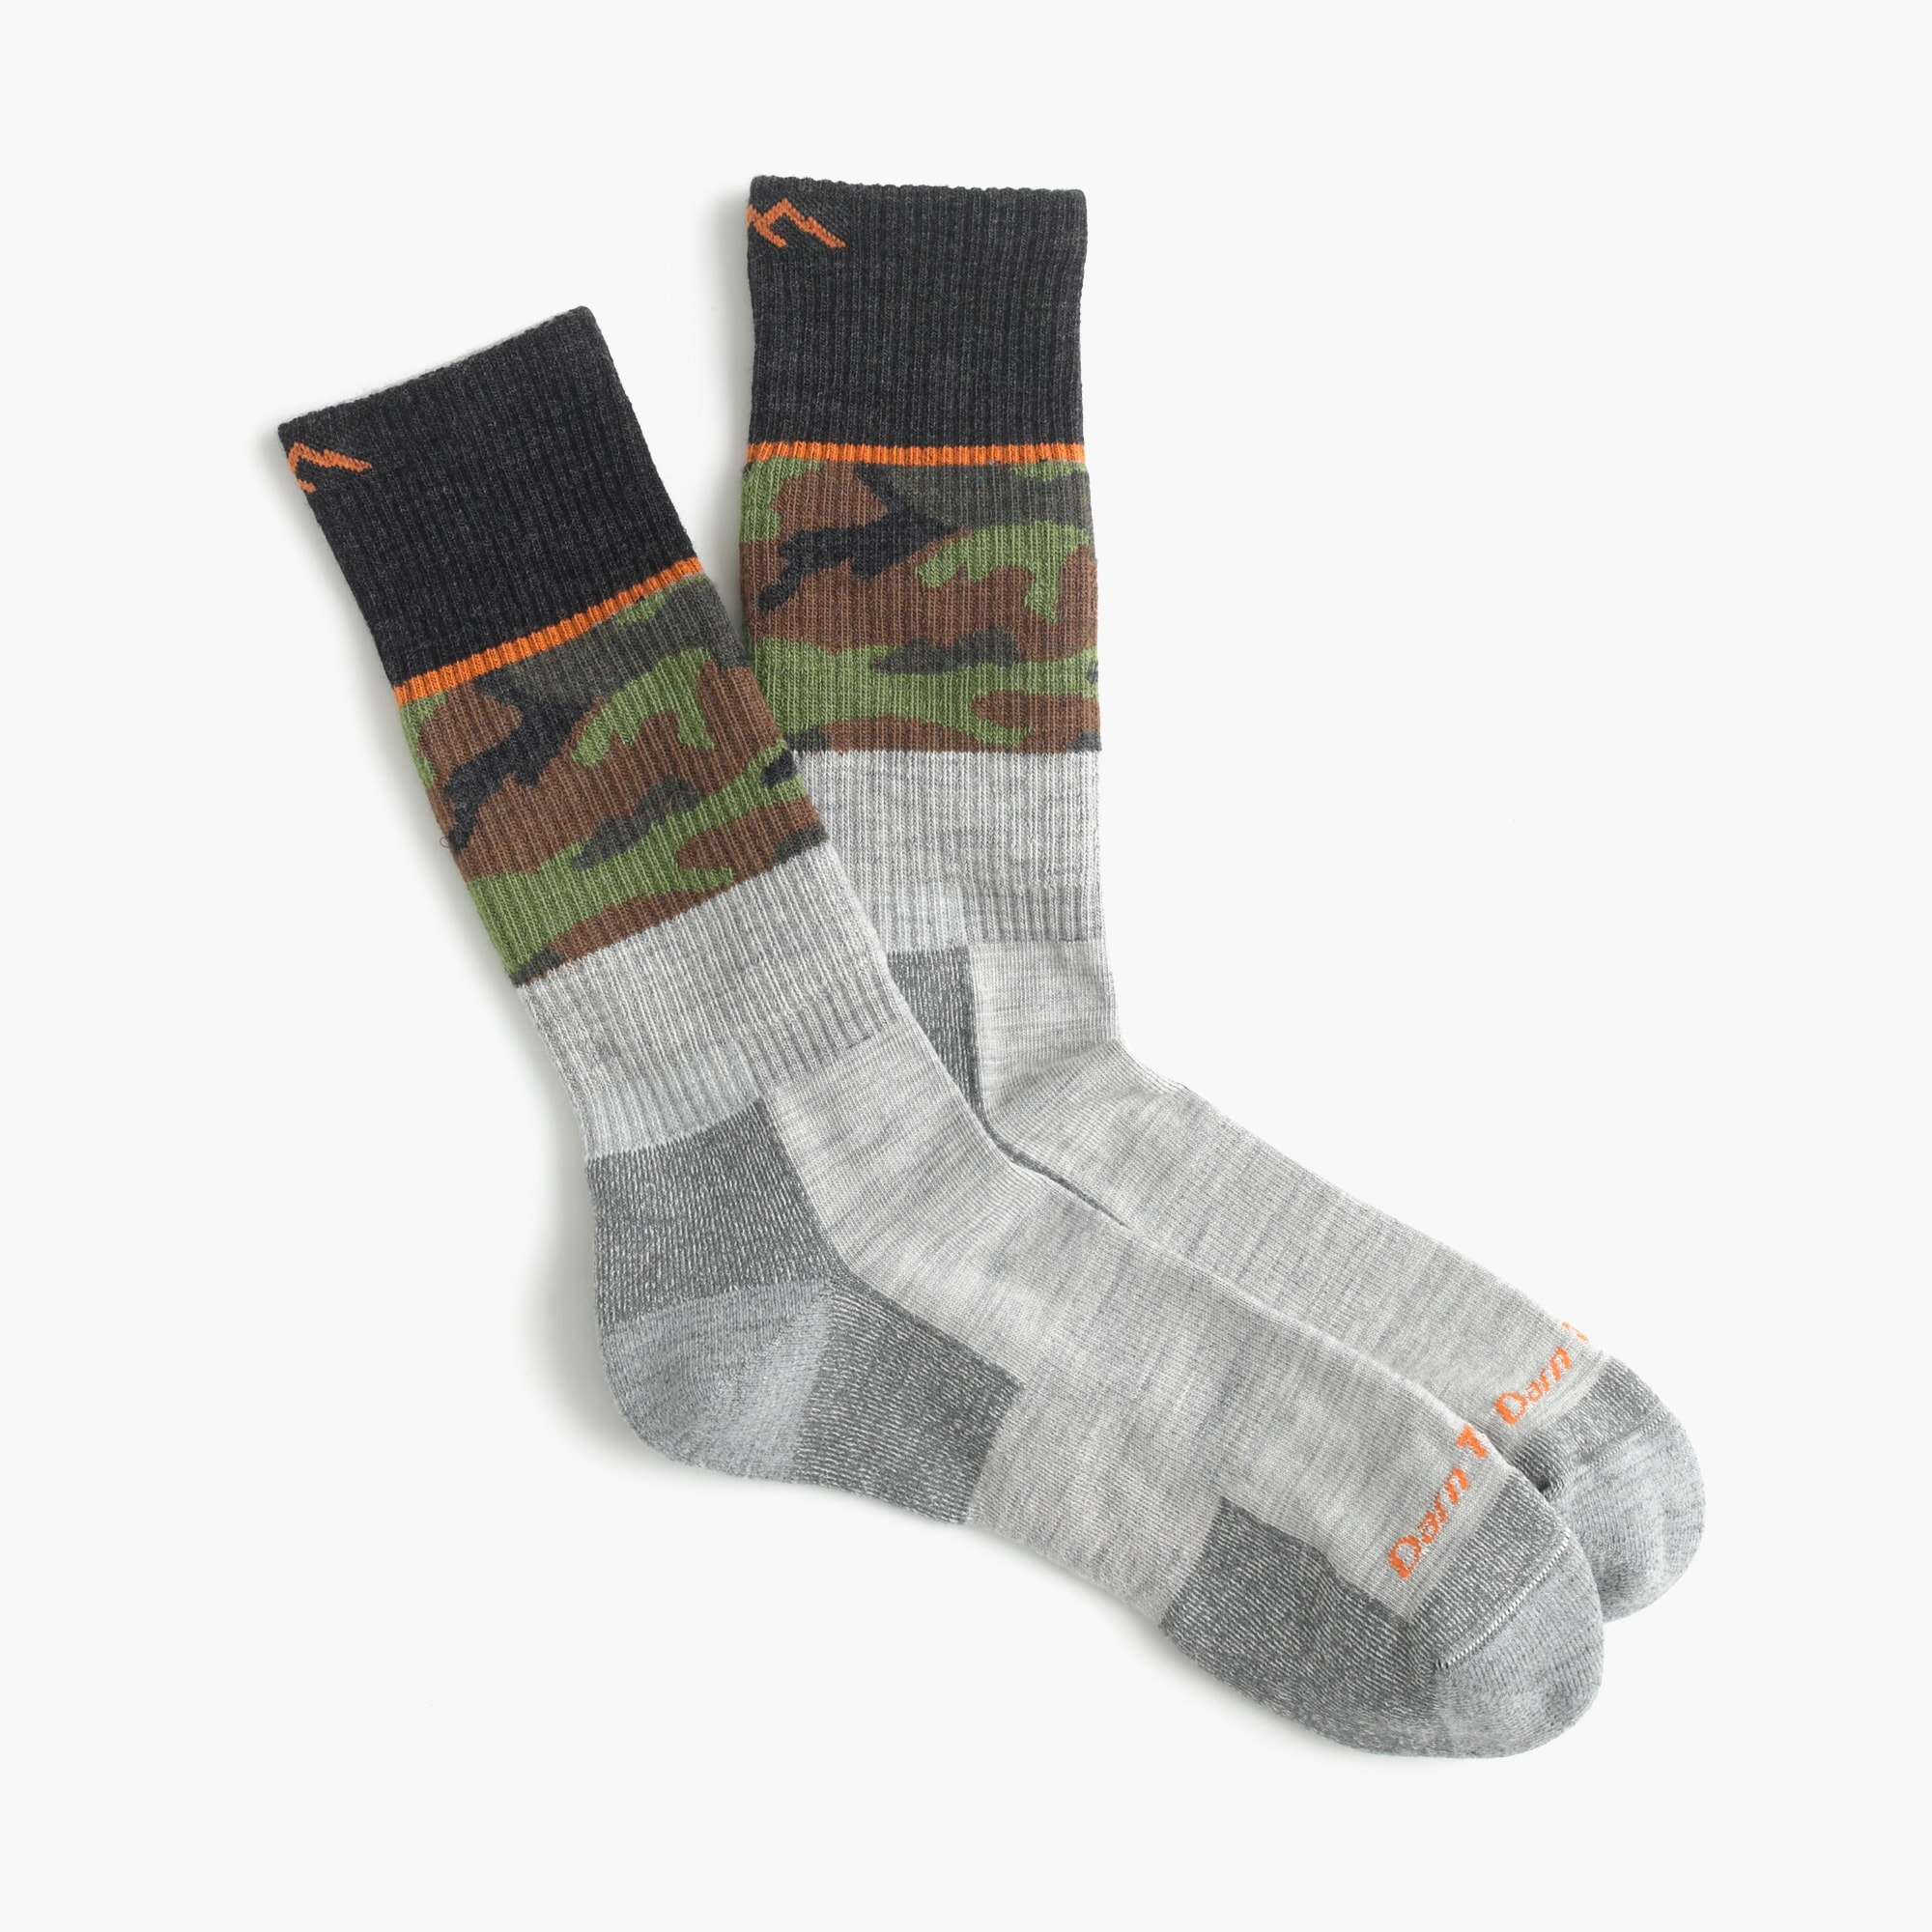 darn tough vermont for j.crew striped camo socks : men's socks